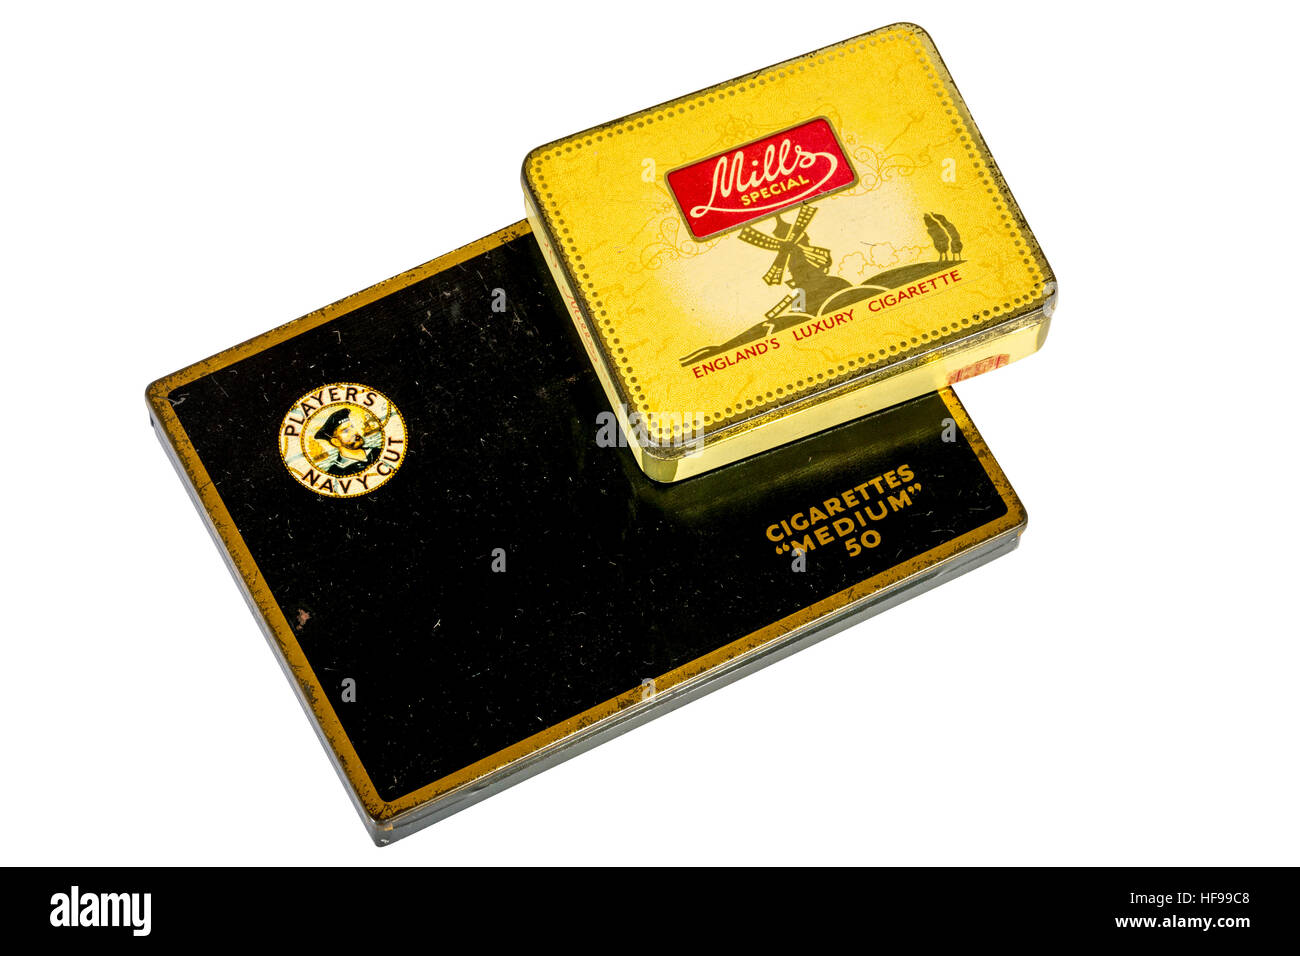 Studio shot of yellow Mills Special and black Players Navy Cut metal cigarette tins isolated on white - Stock Image